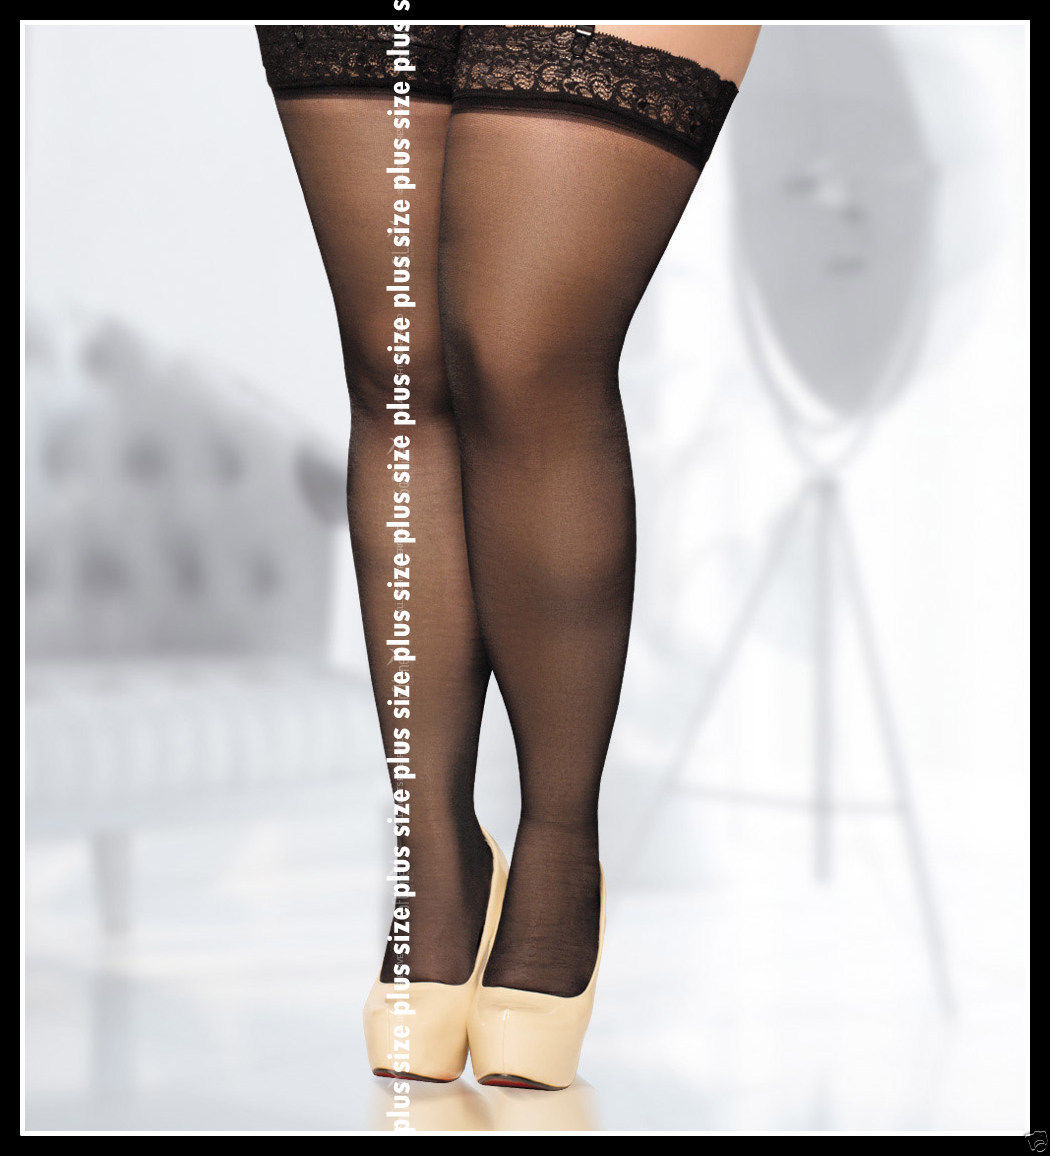 5ca3f6baad0 S l1600. S l1600. Previous. sheer lace stockings Hold Ups plus large size  4XL 5XL UK 14 16 18 EU 46. sheer lace stockings ...